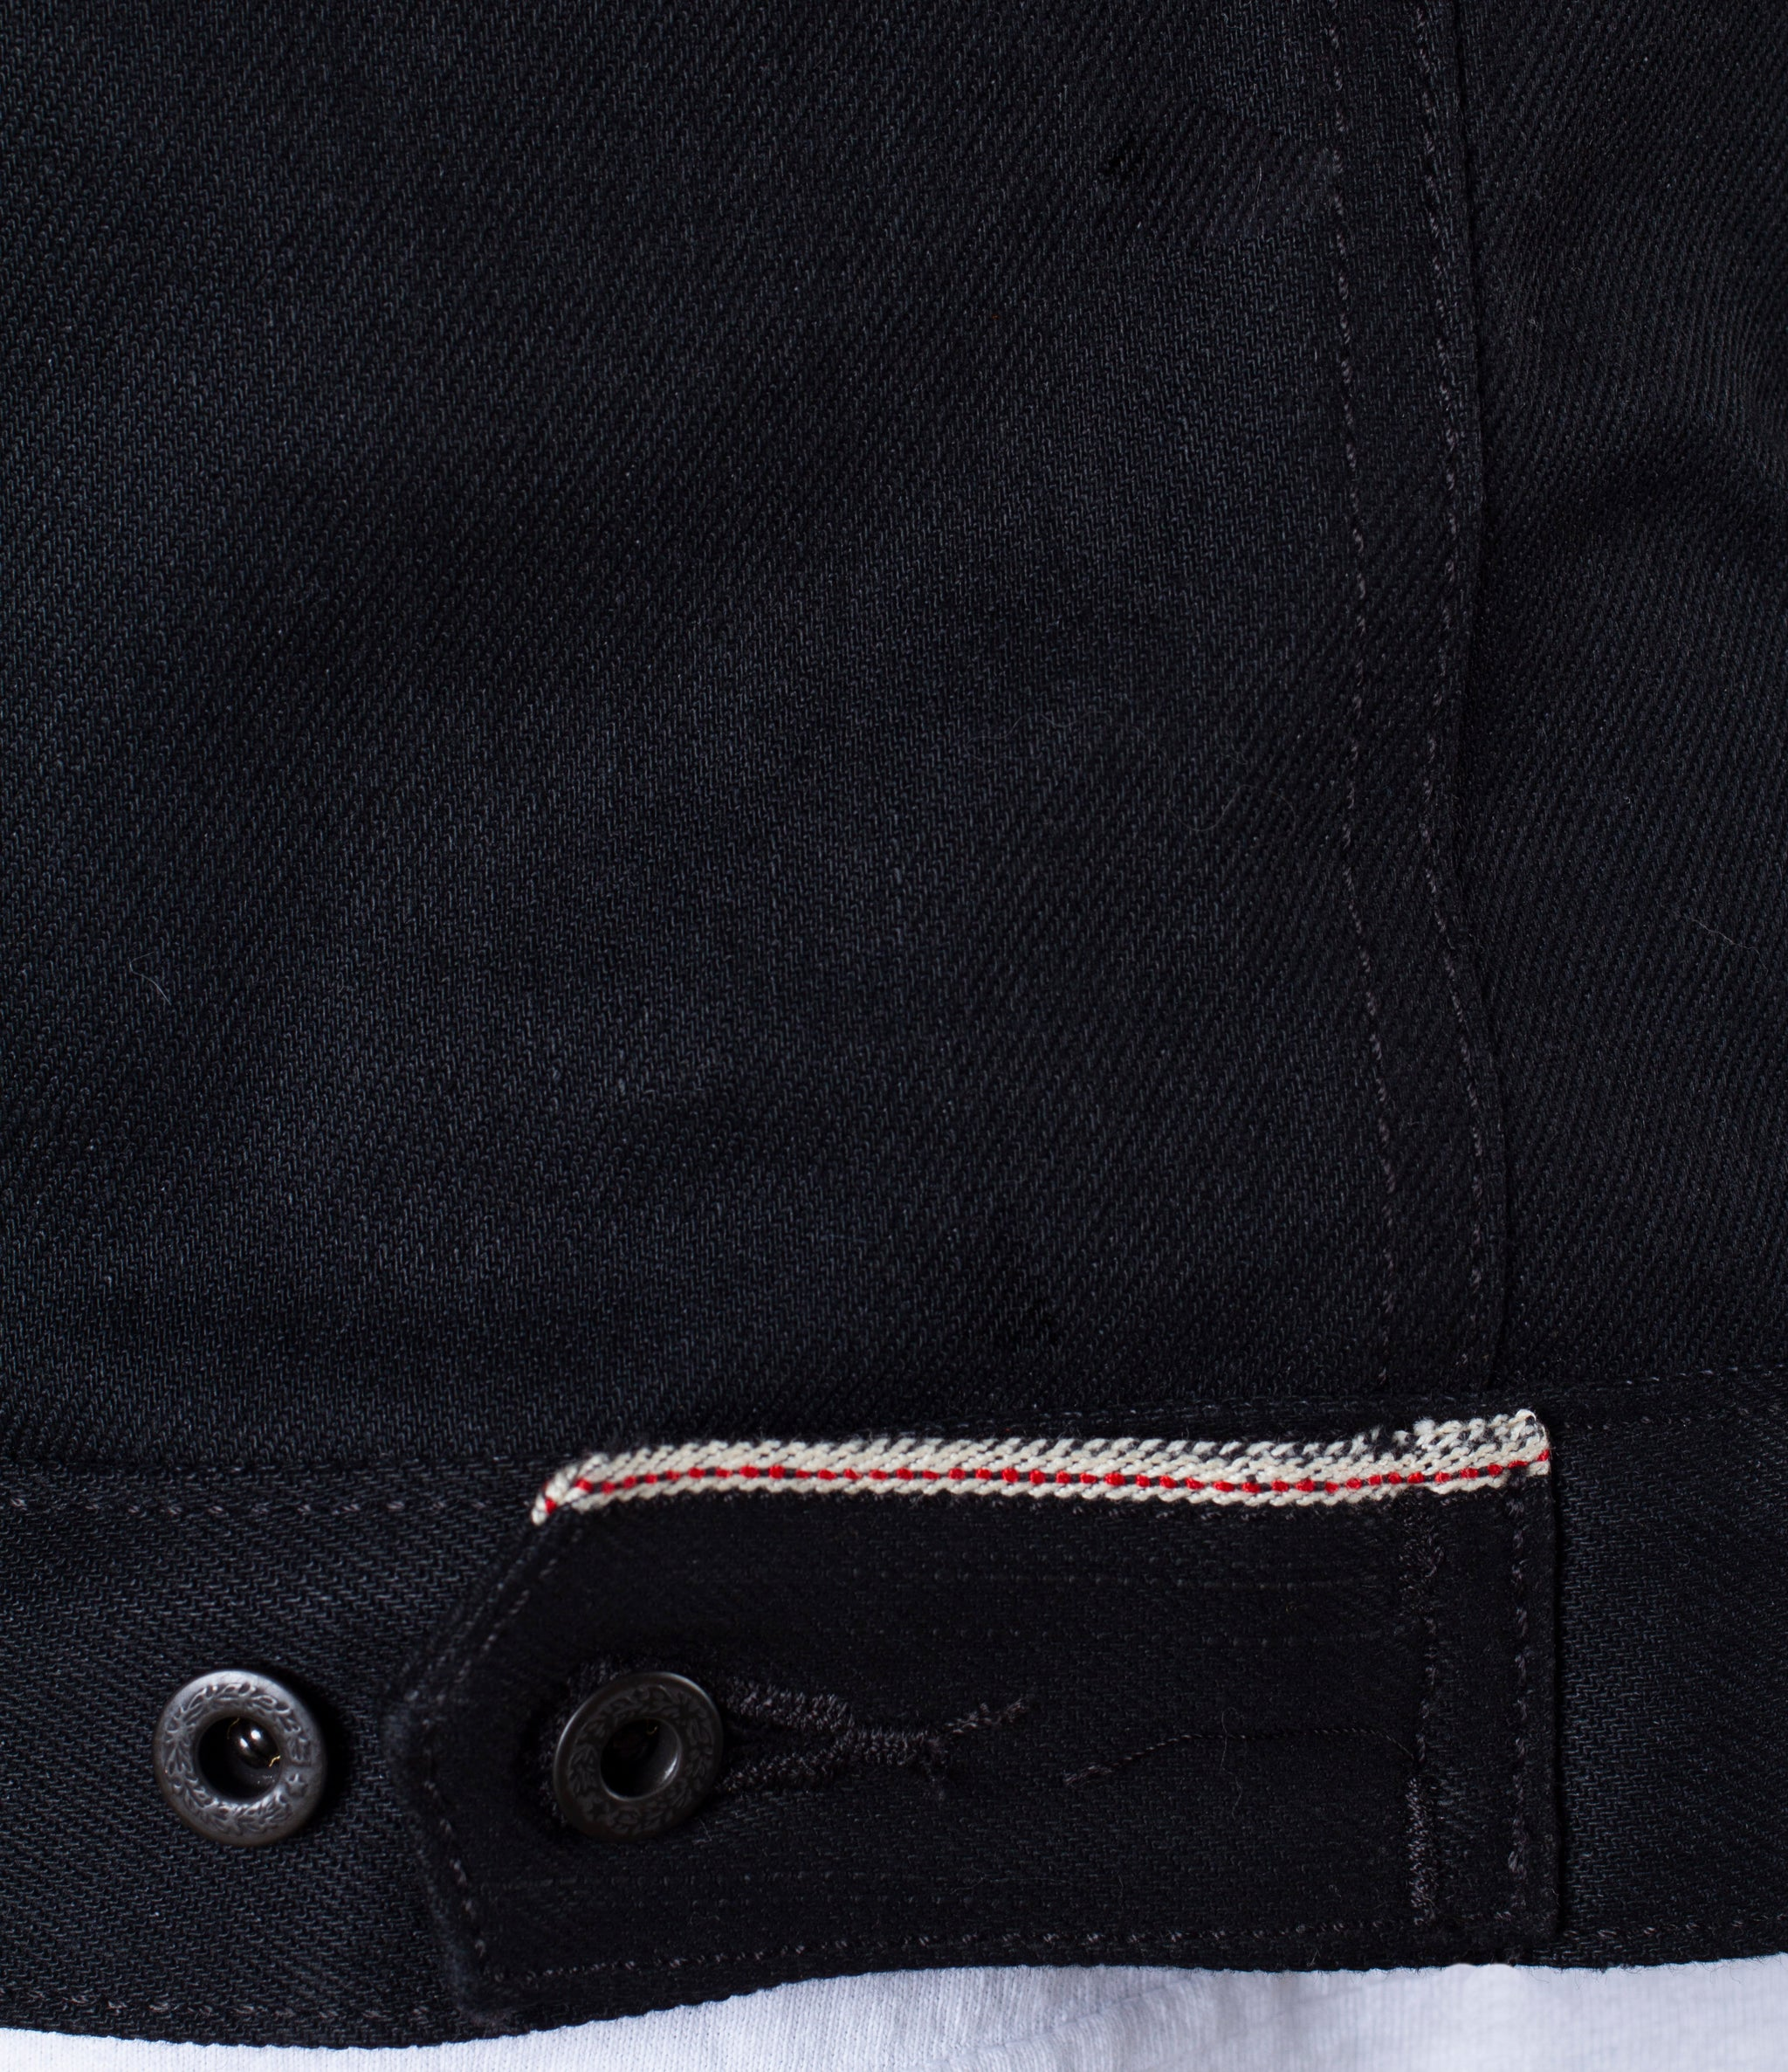 The Ironside Sherpa Fleece 13oz 'Johnny Cash Black' Cone Mills Selvage Denim Jacket